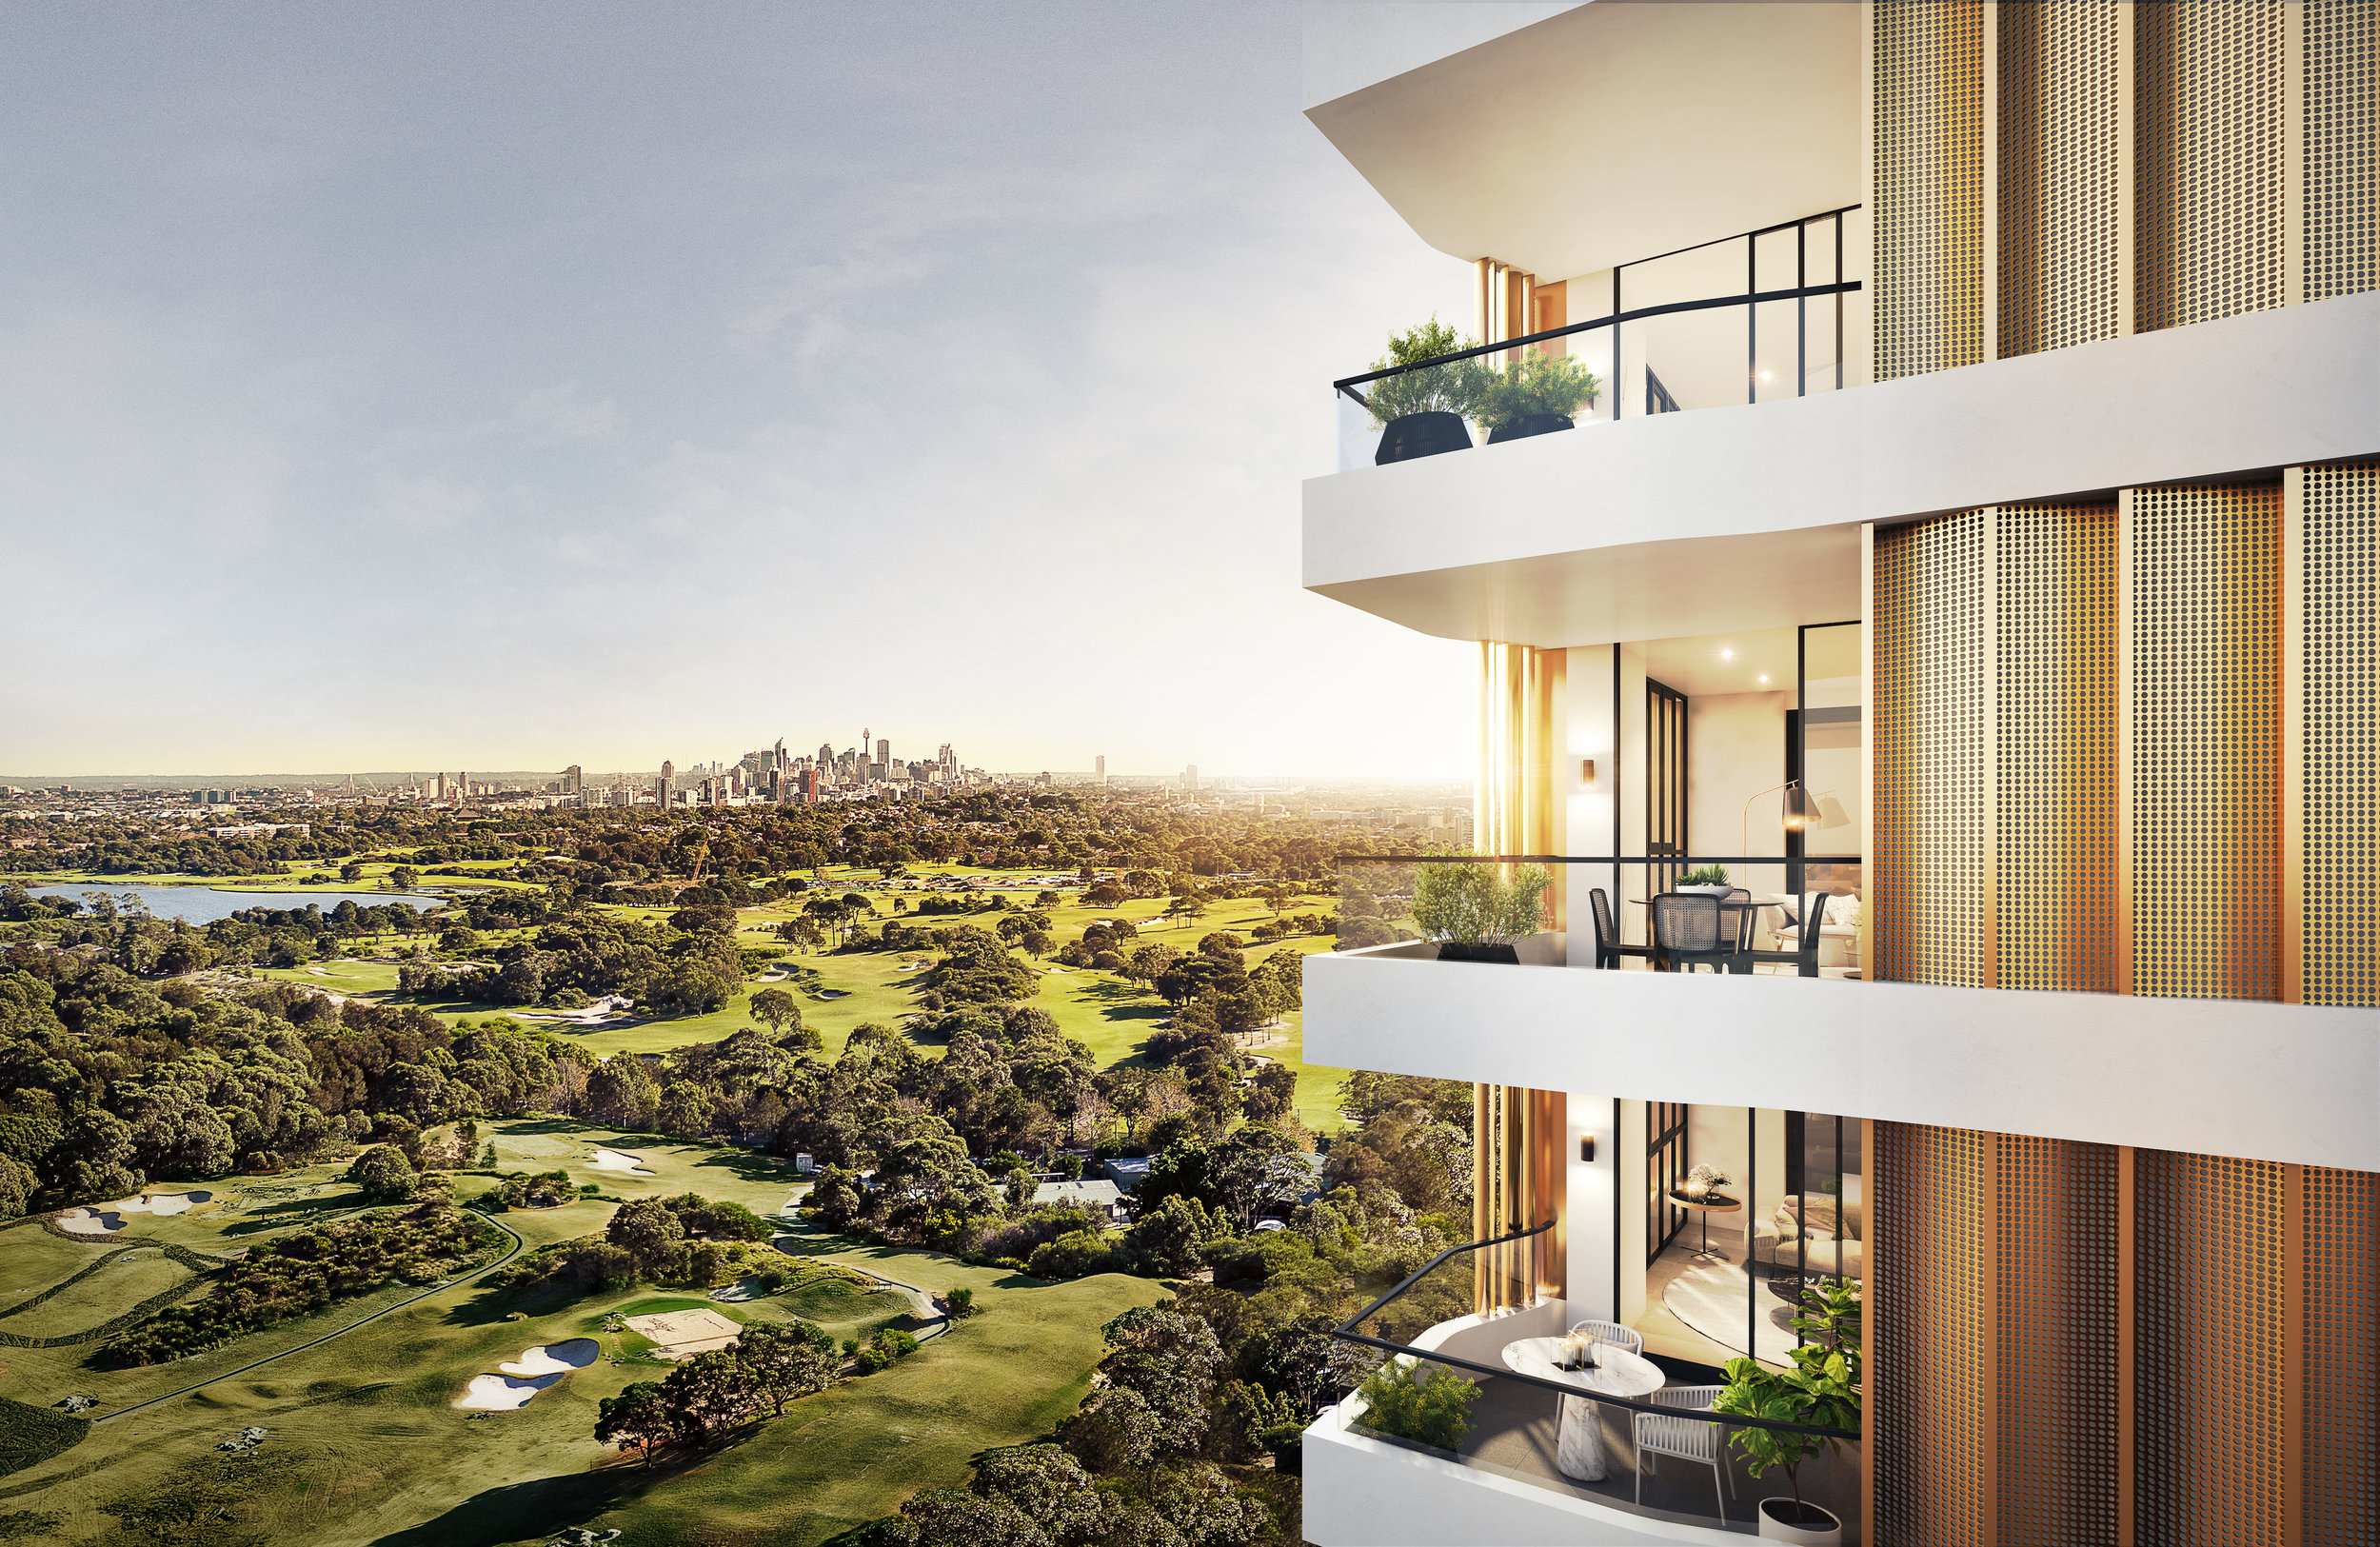 Pagewood Green - Allium - An iconic new neighbourhood setting a new benchmark for quality and design in Pagewood.